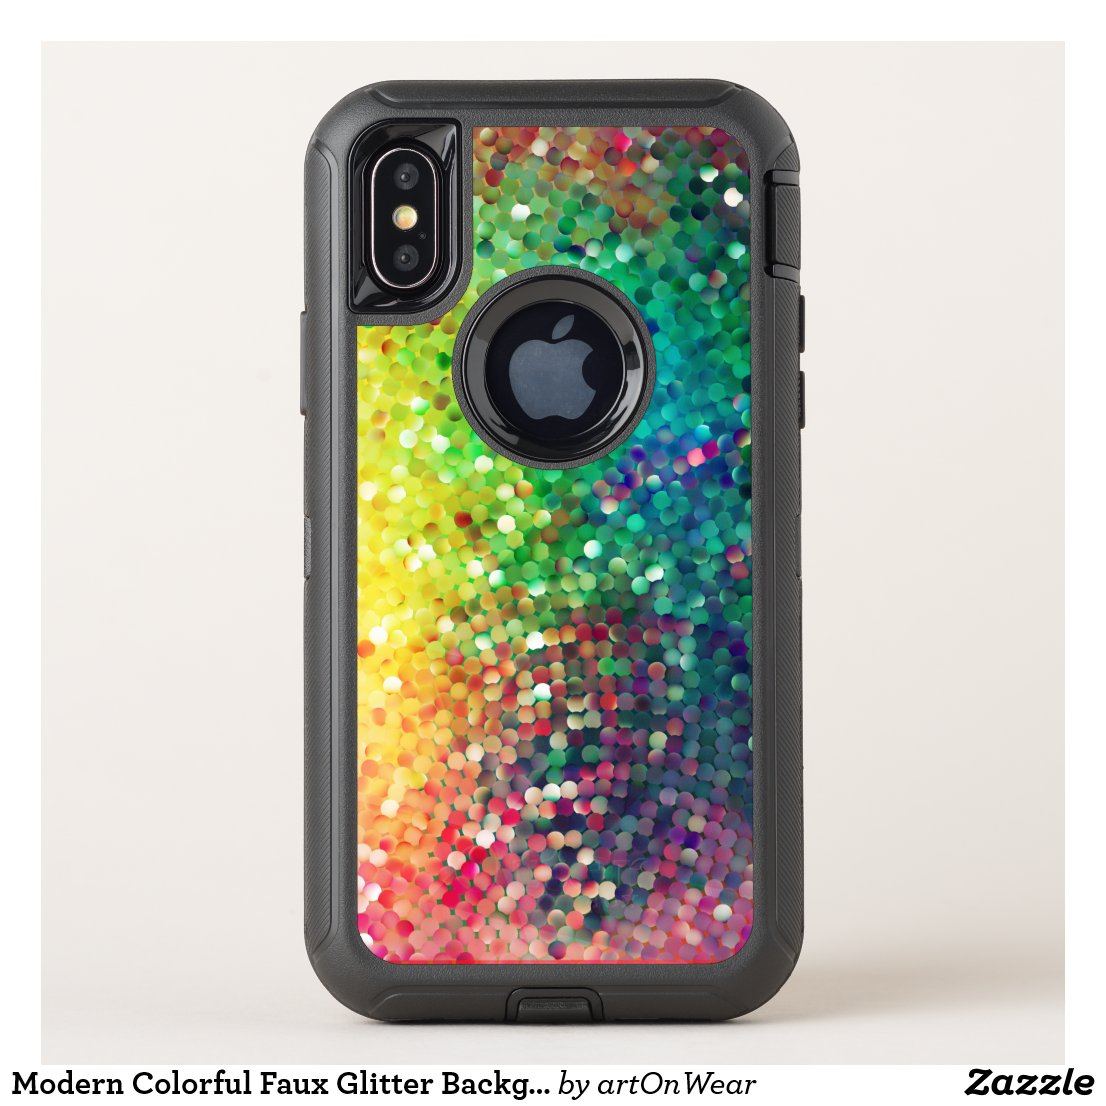 Modern Colorful Faux Glitter Background